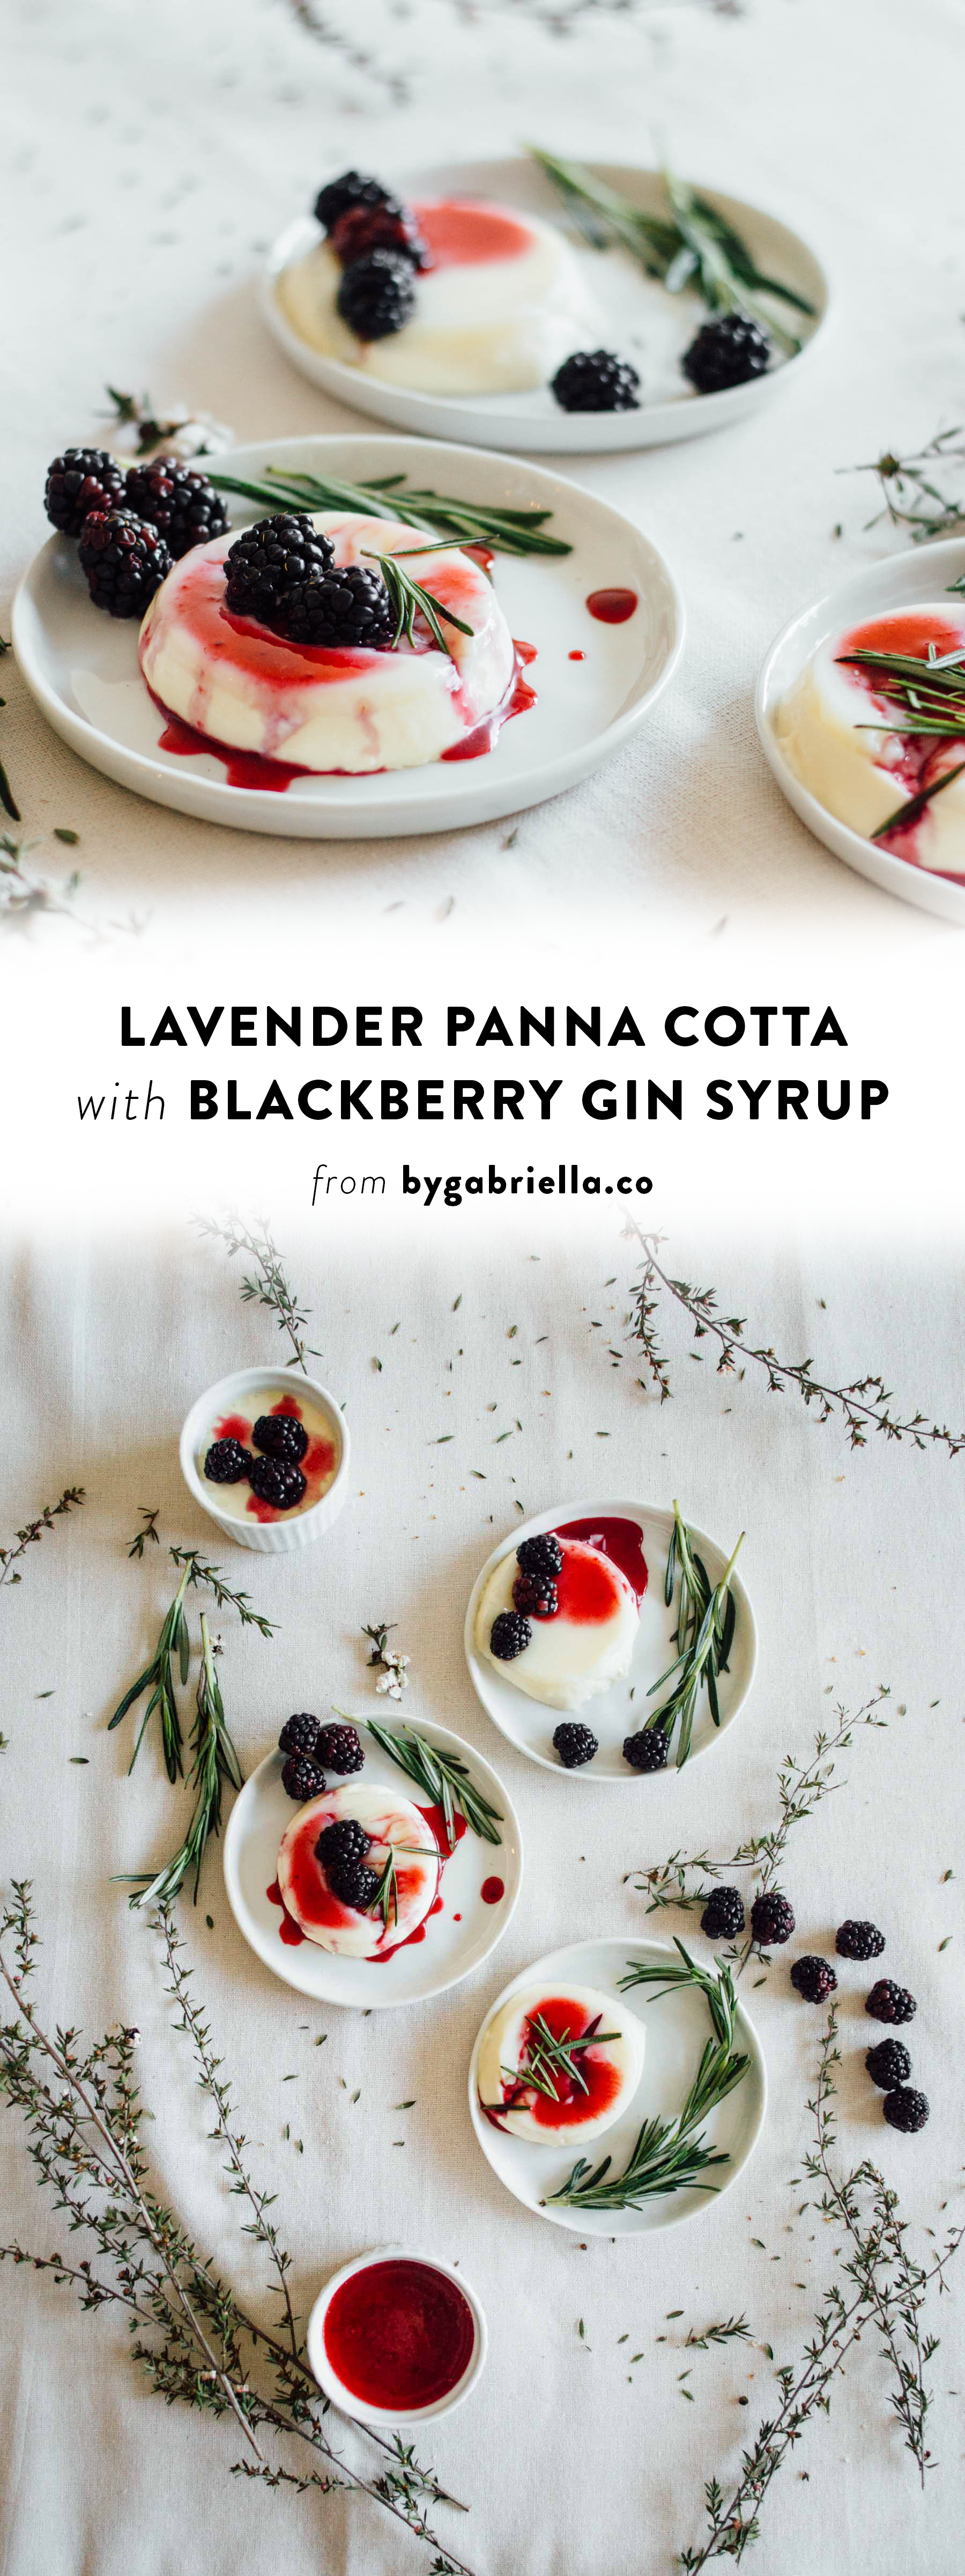 Lavender Panna Cotta recipe with Blackberry, Rosemary, & Gin Syrup. Super easy to make and perfect for Spring! | By Gabriella